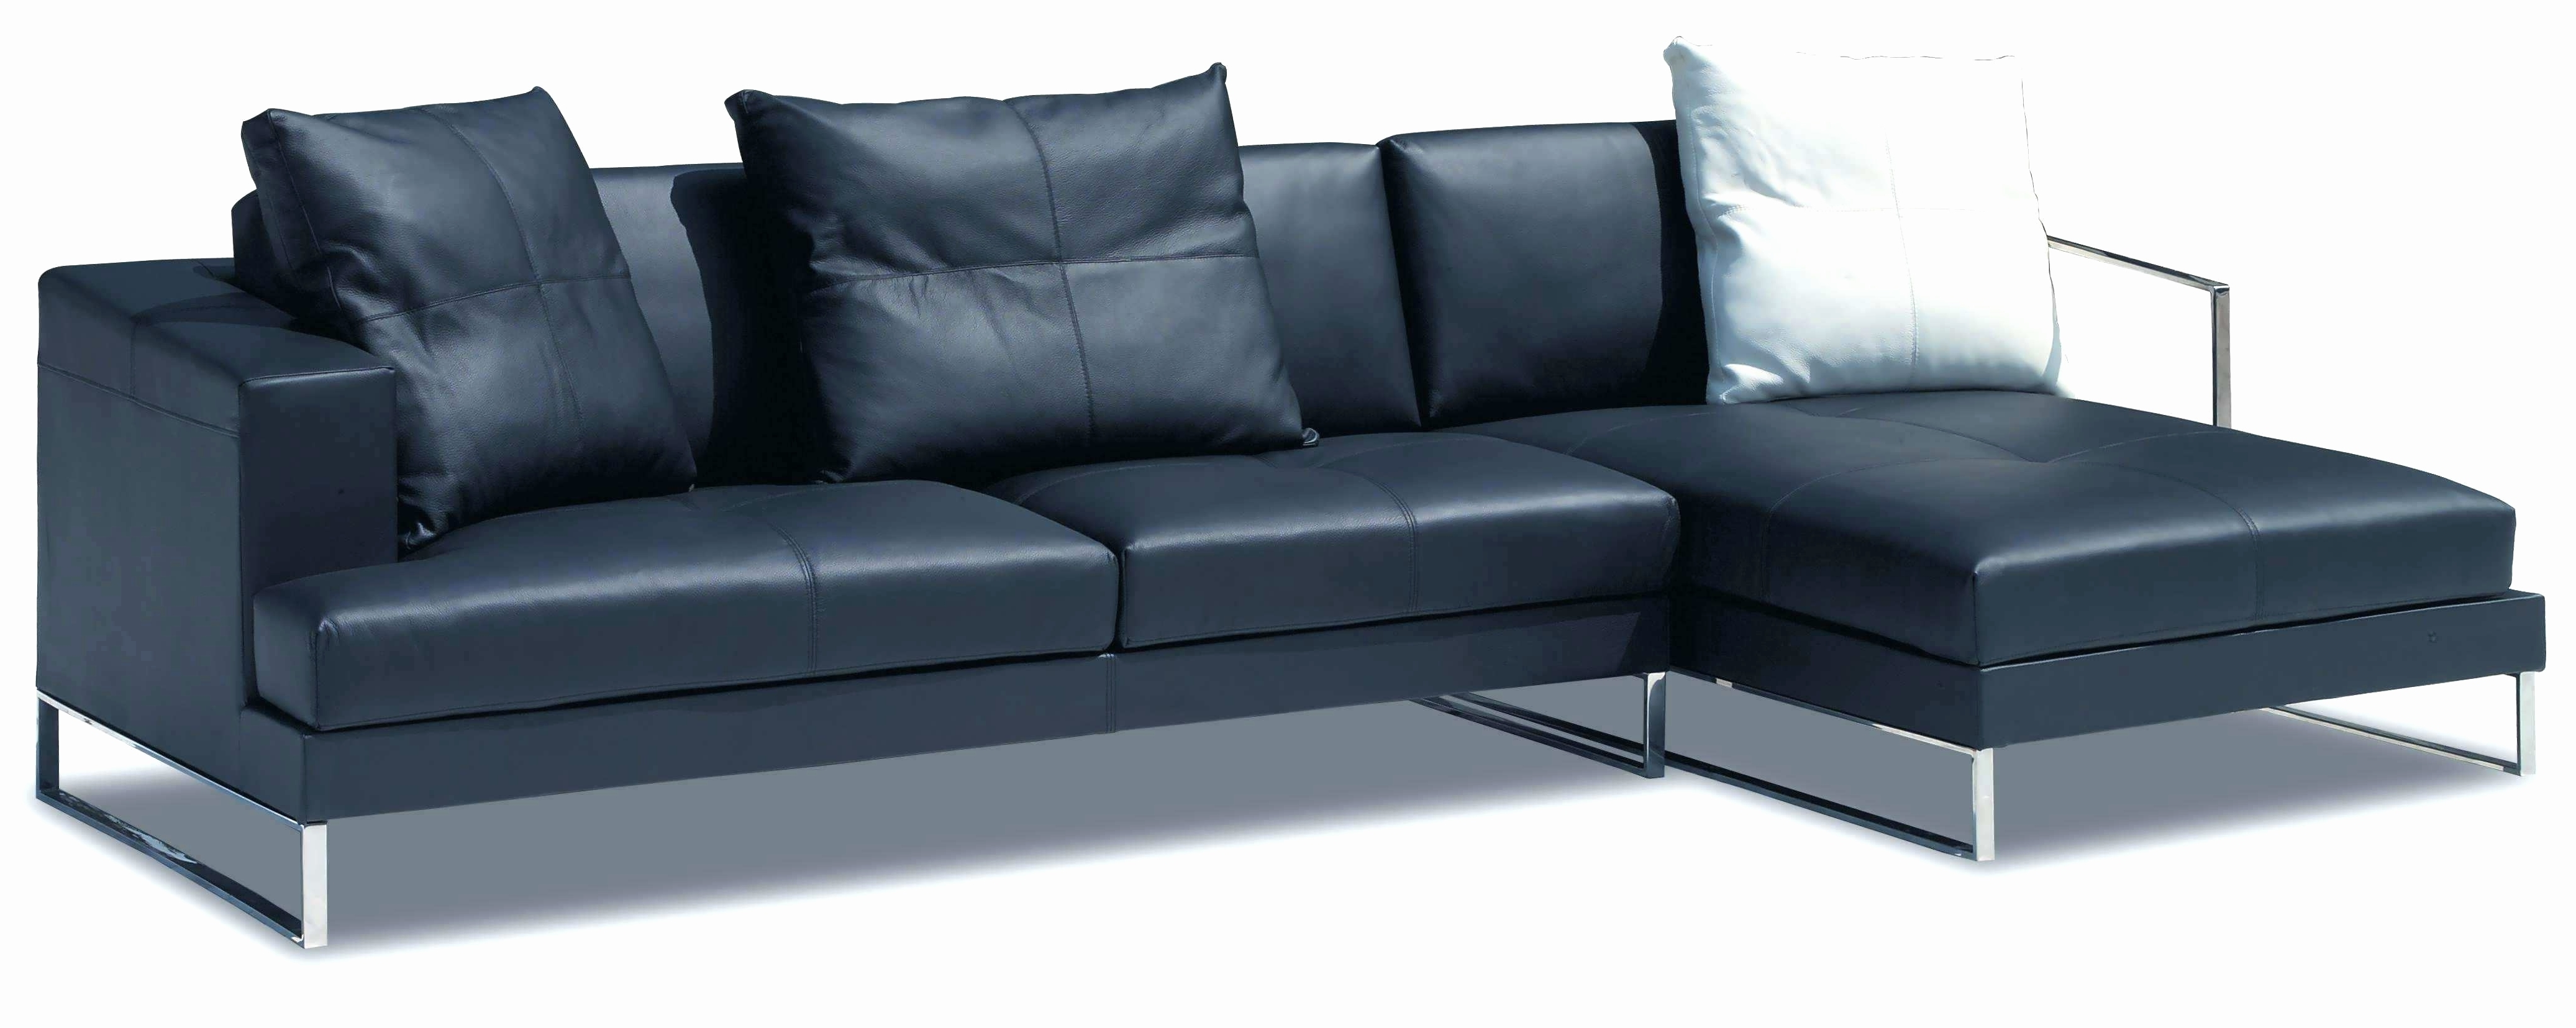 Sectional Sofas With Double Chaise Inside Newest Unique Gray Sectional Sofa With Chaise 2018 – Couches Ideas (View 12 of 15)